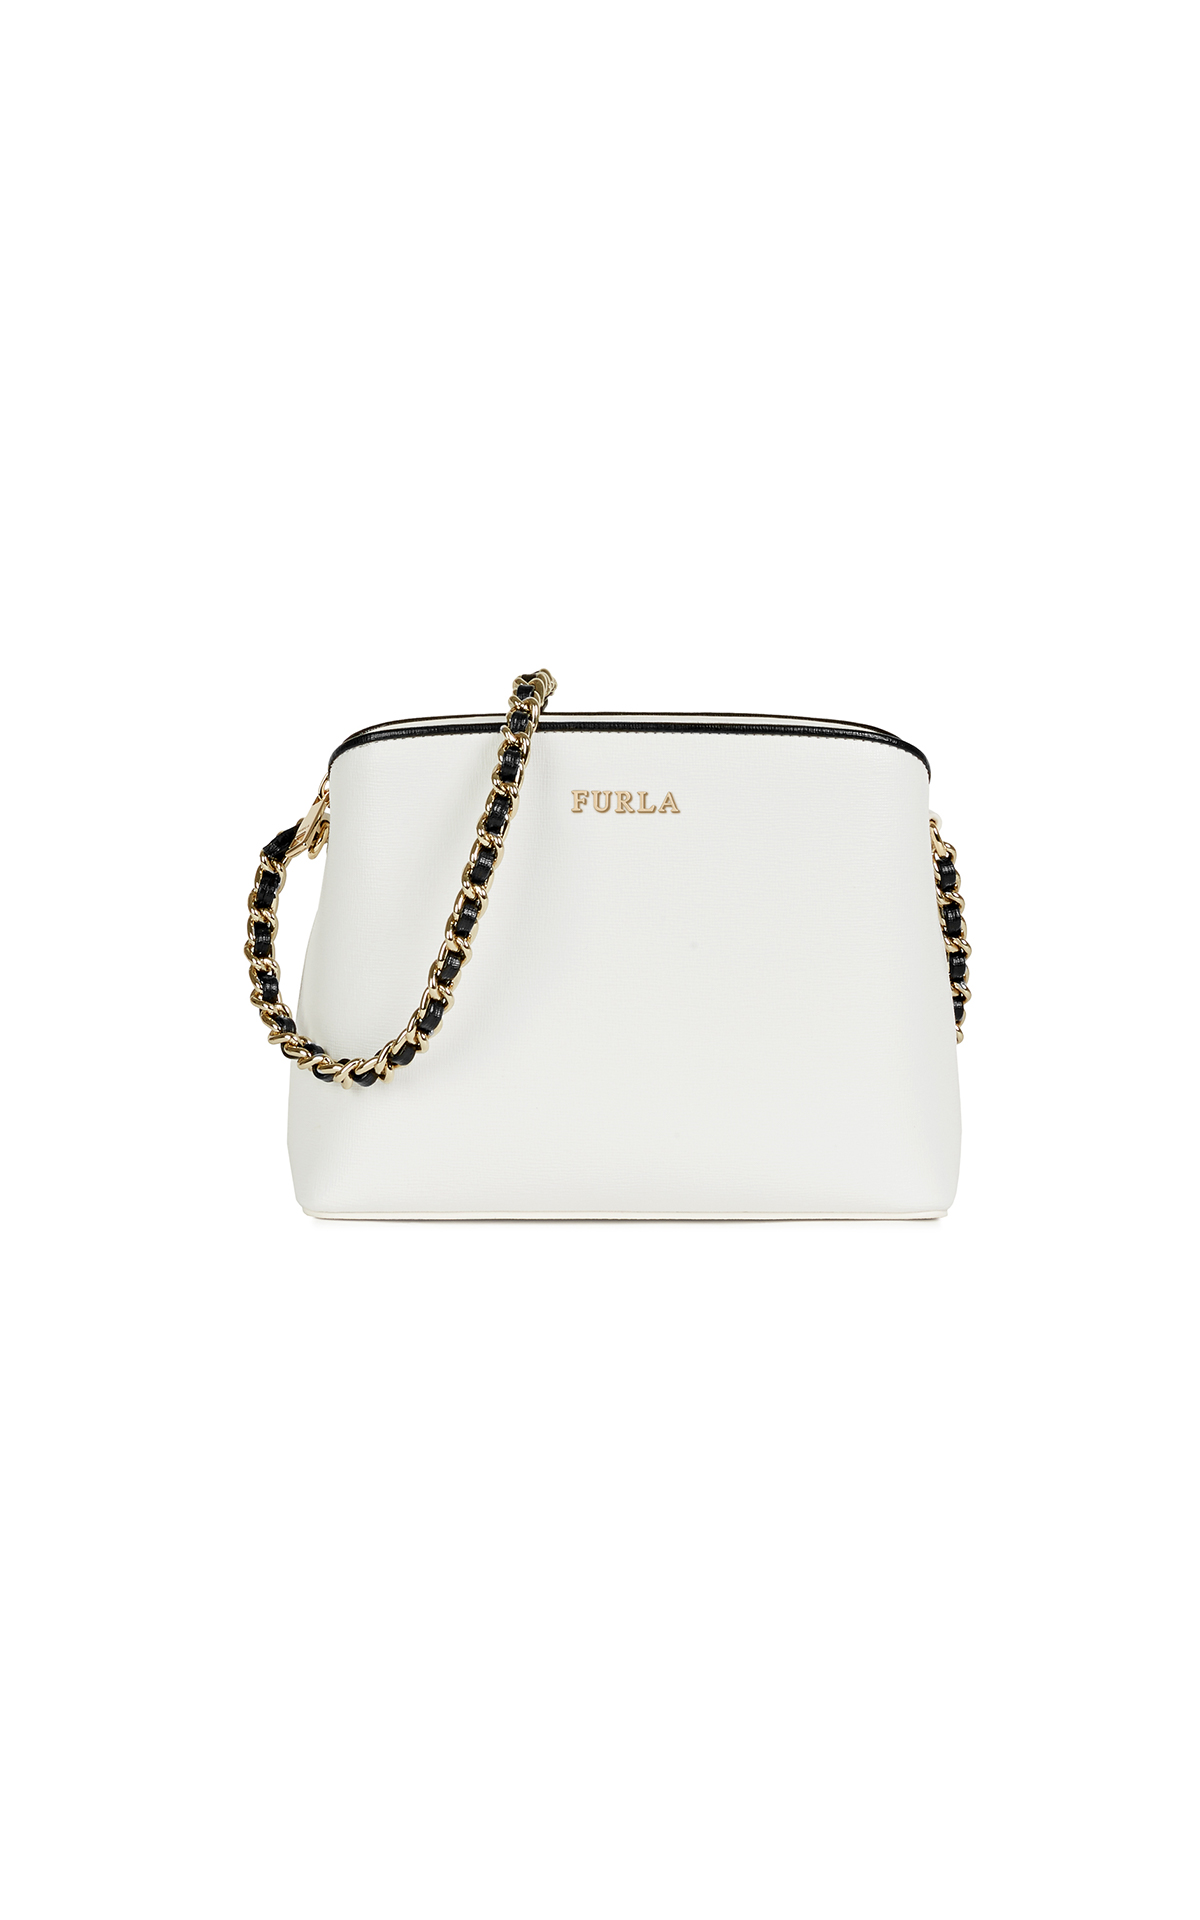 Furla Tessa mini crossbody at The Bicester Village Shopping Collection